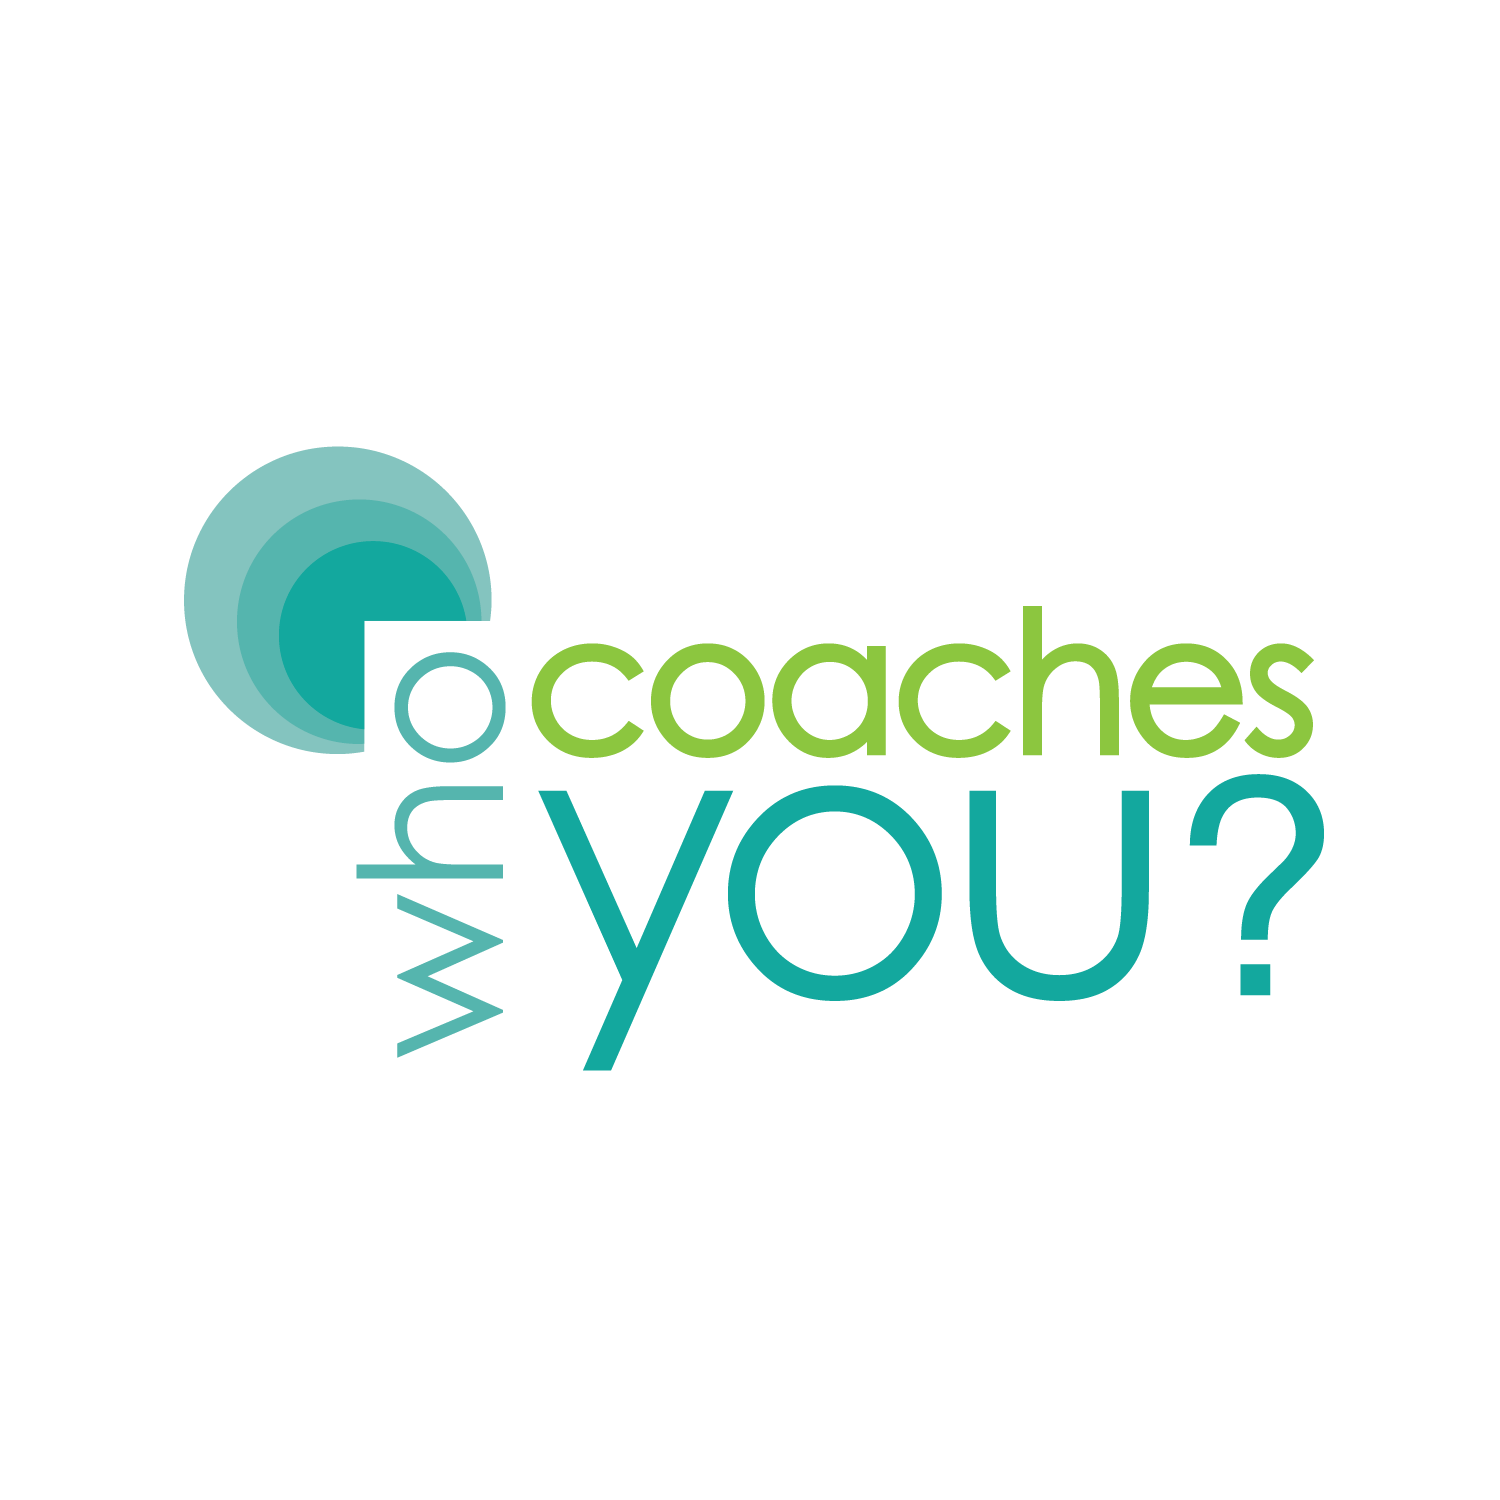 Who Coaches You?